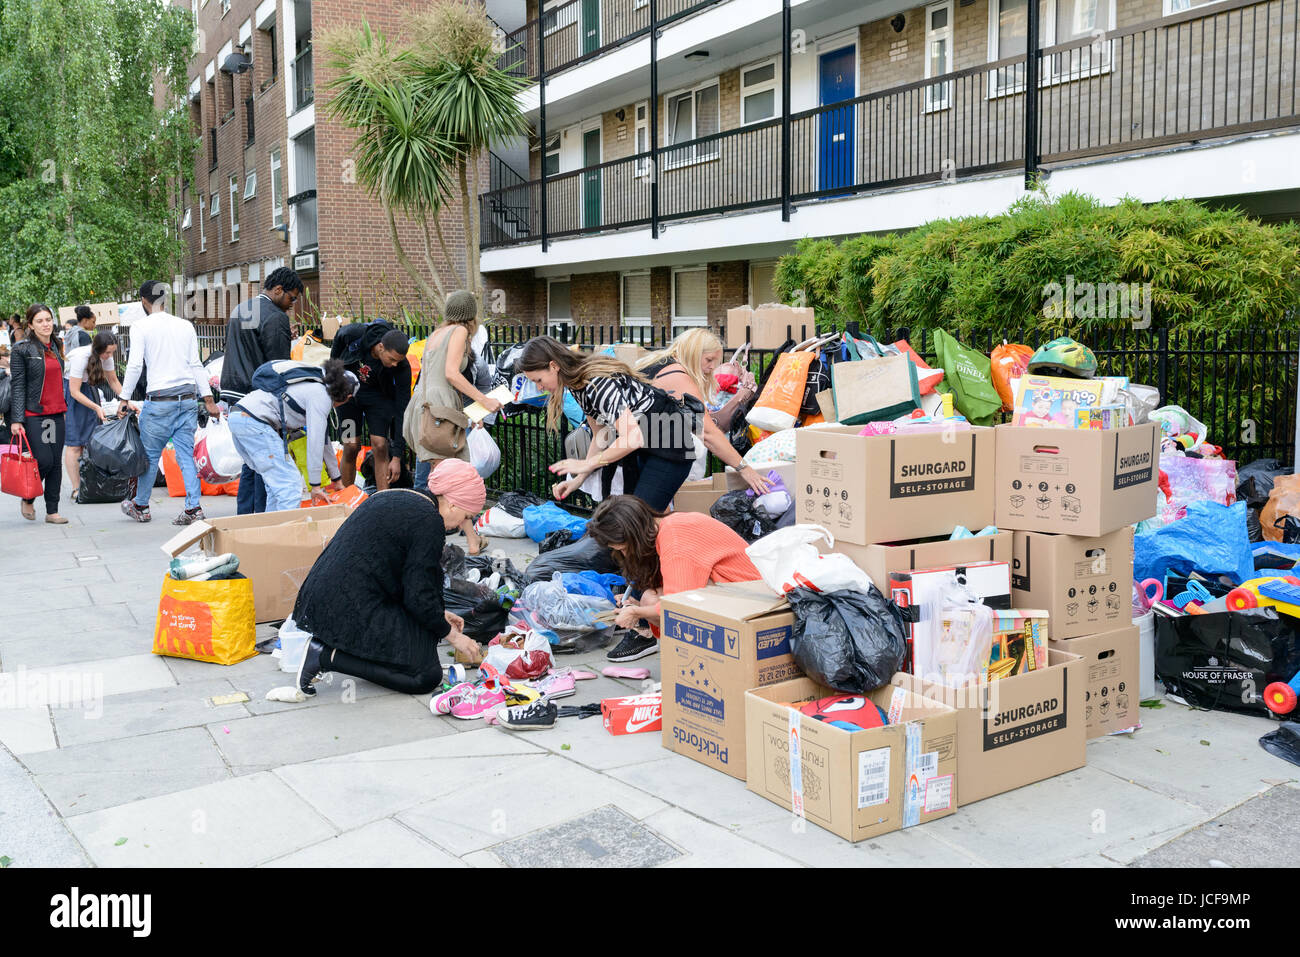 London, UK. 15th June, 2017. Volunteers sorting donations for the residents of Grenfell Tower who lost everything Stock Photo